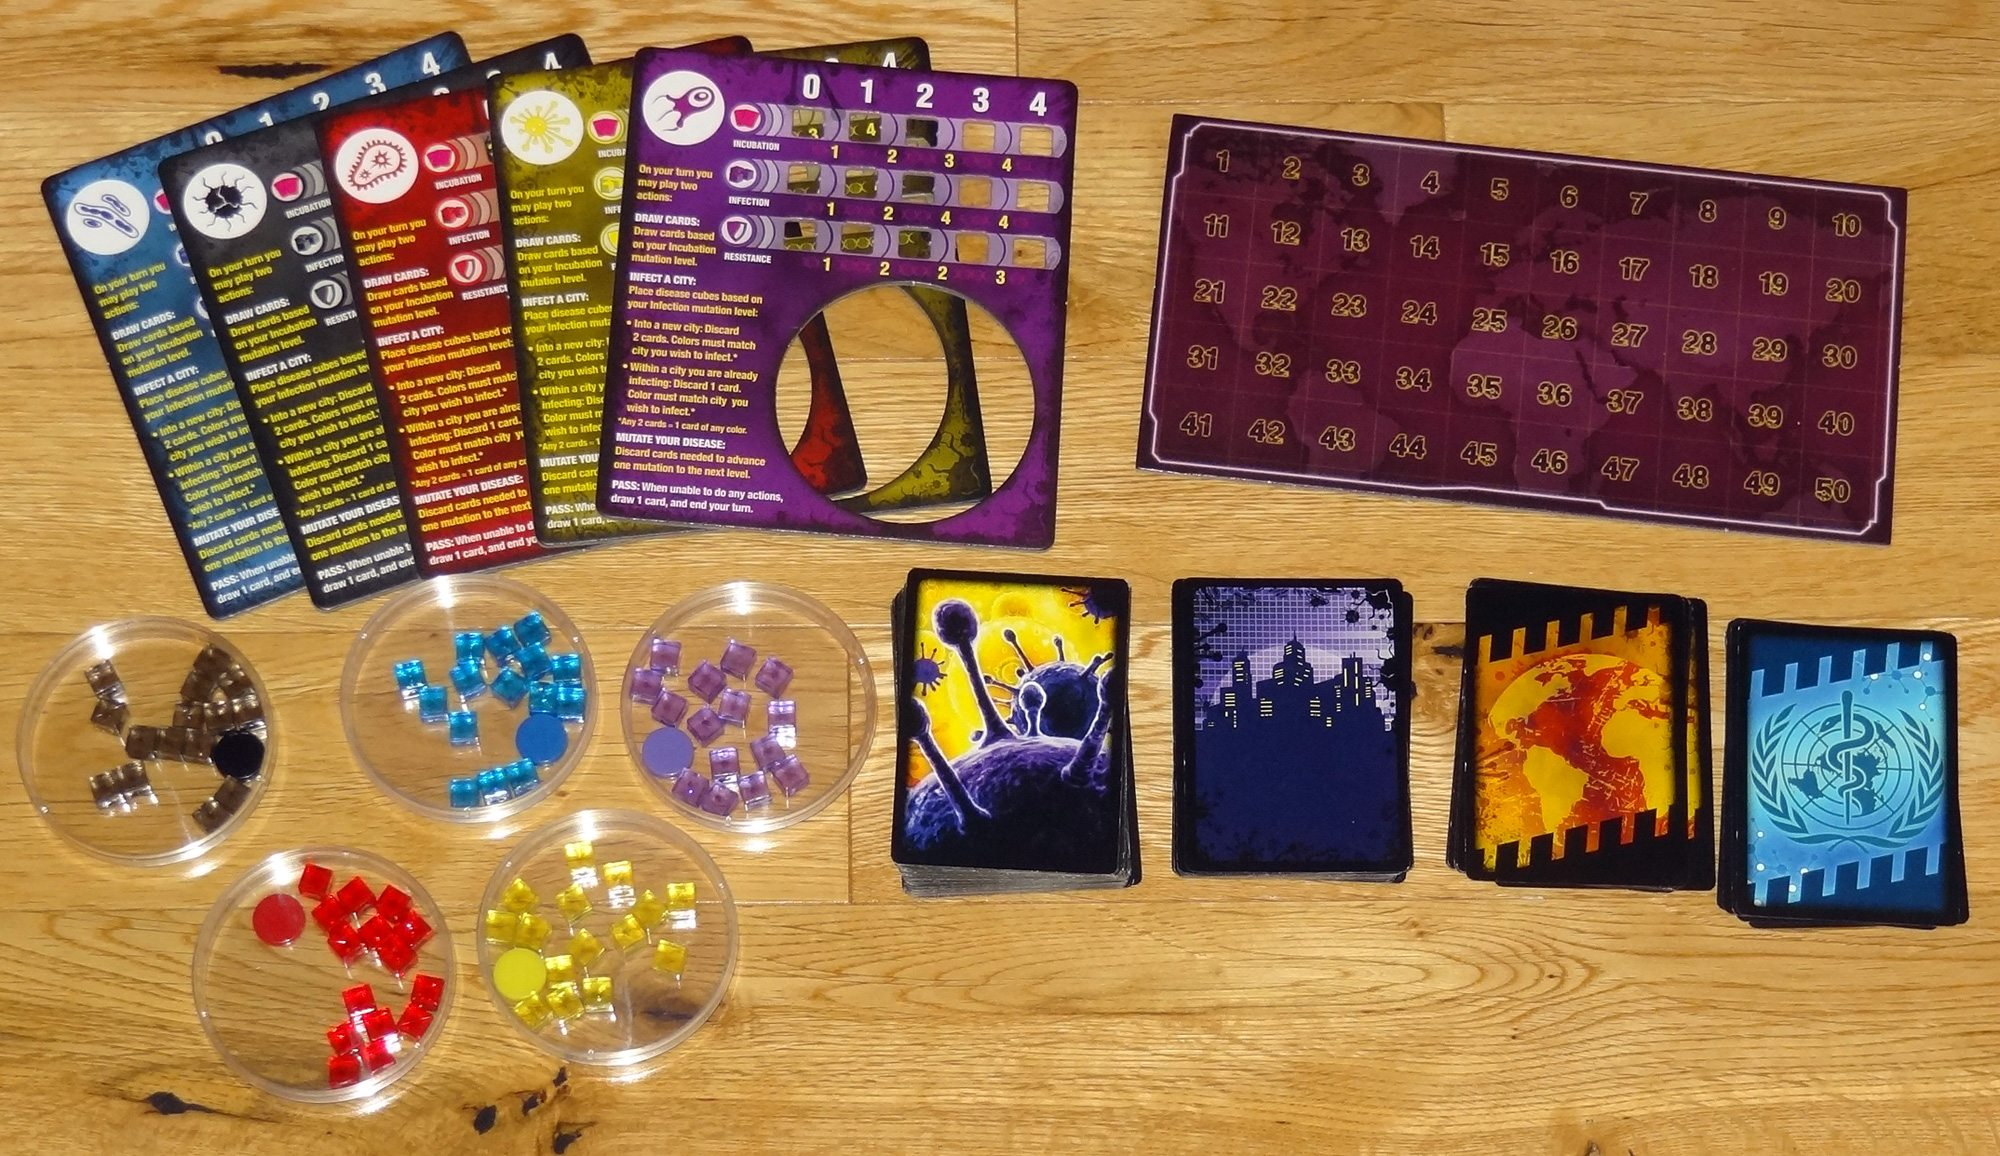 Pandemic Contagion components